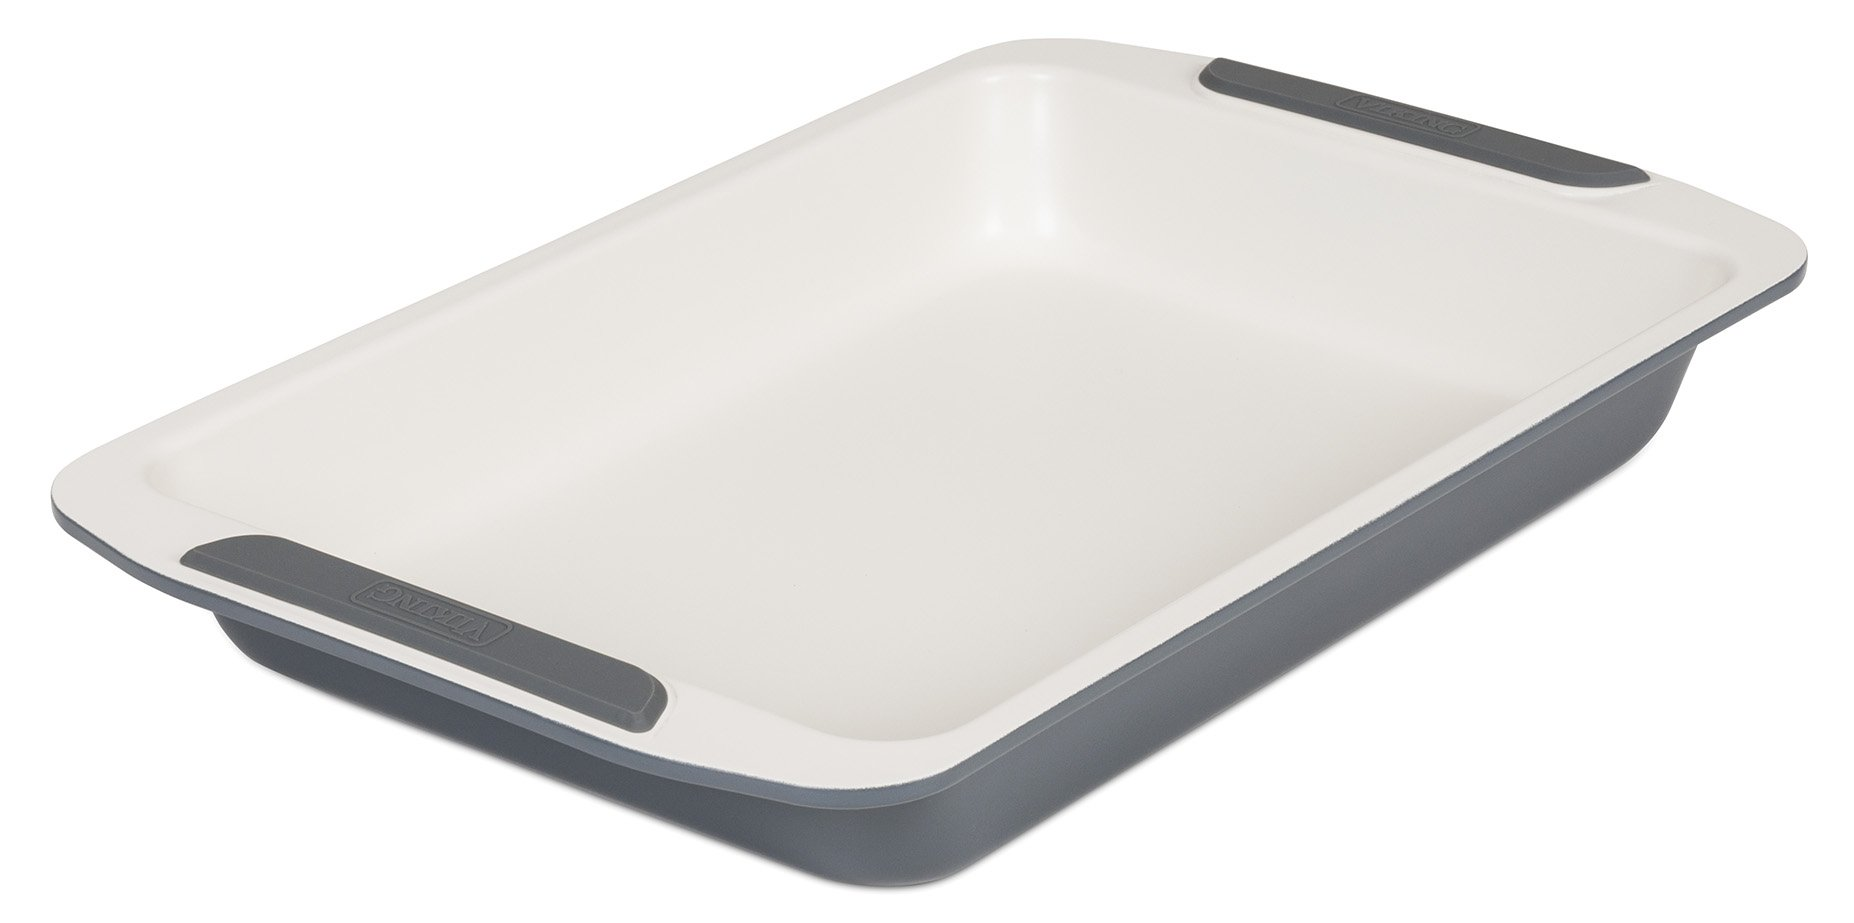 Viking Ceramic Nonstick Bakeware Roast Baking Sheet, 13 Inch